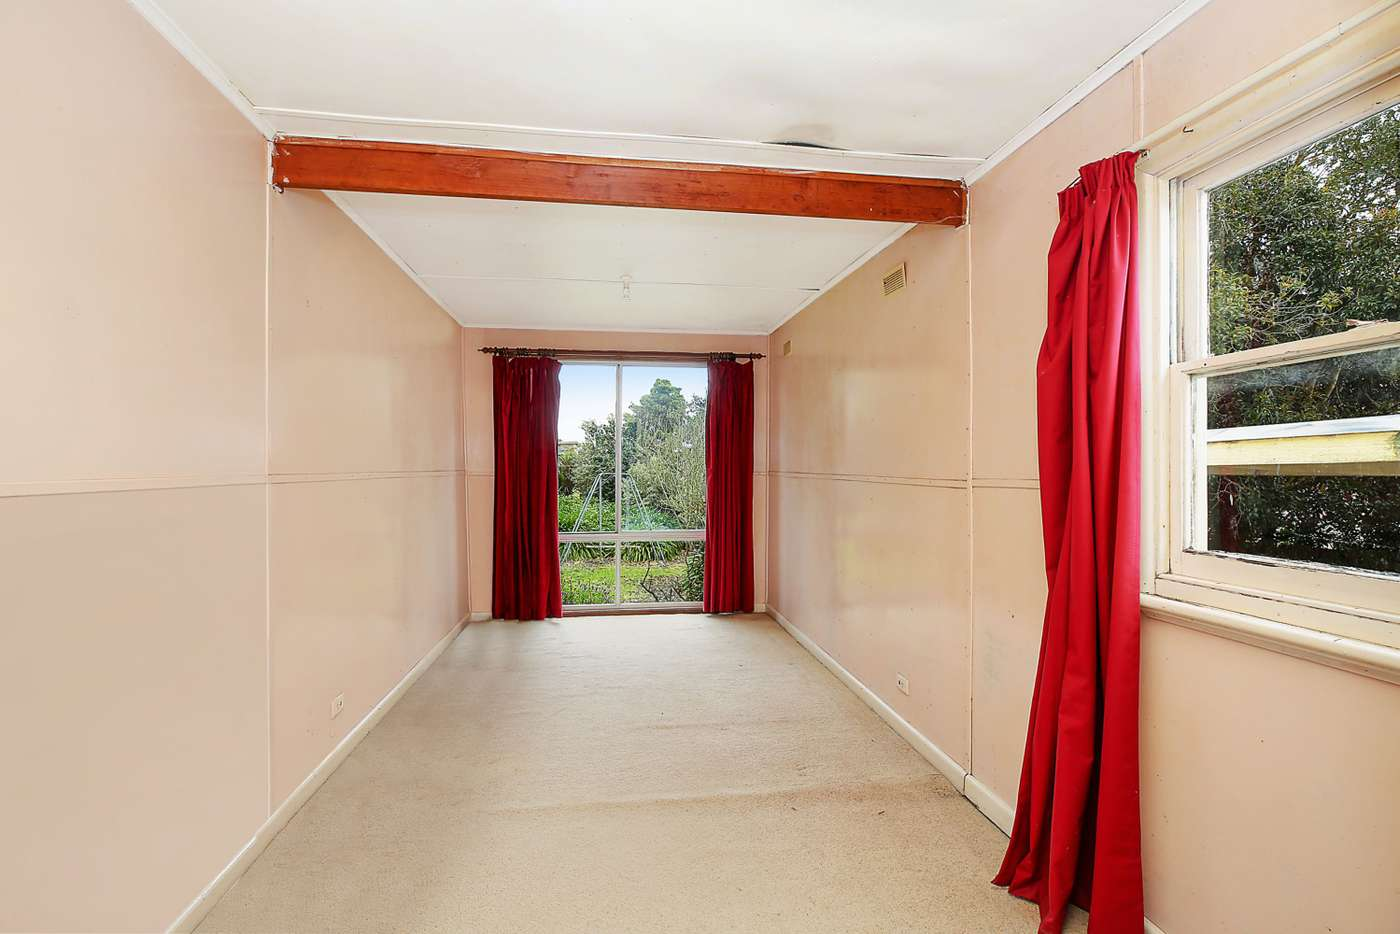 Sixth view of Homely house listing, 45 Church Street, Camperdown VIC 3260